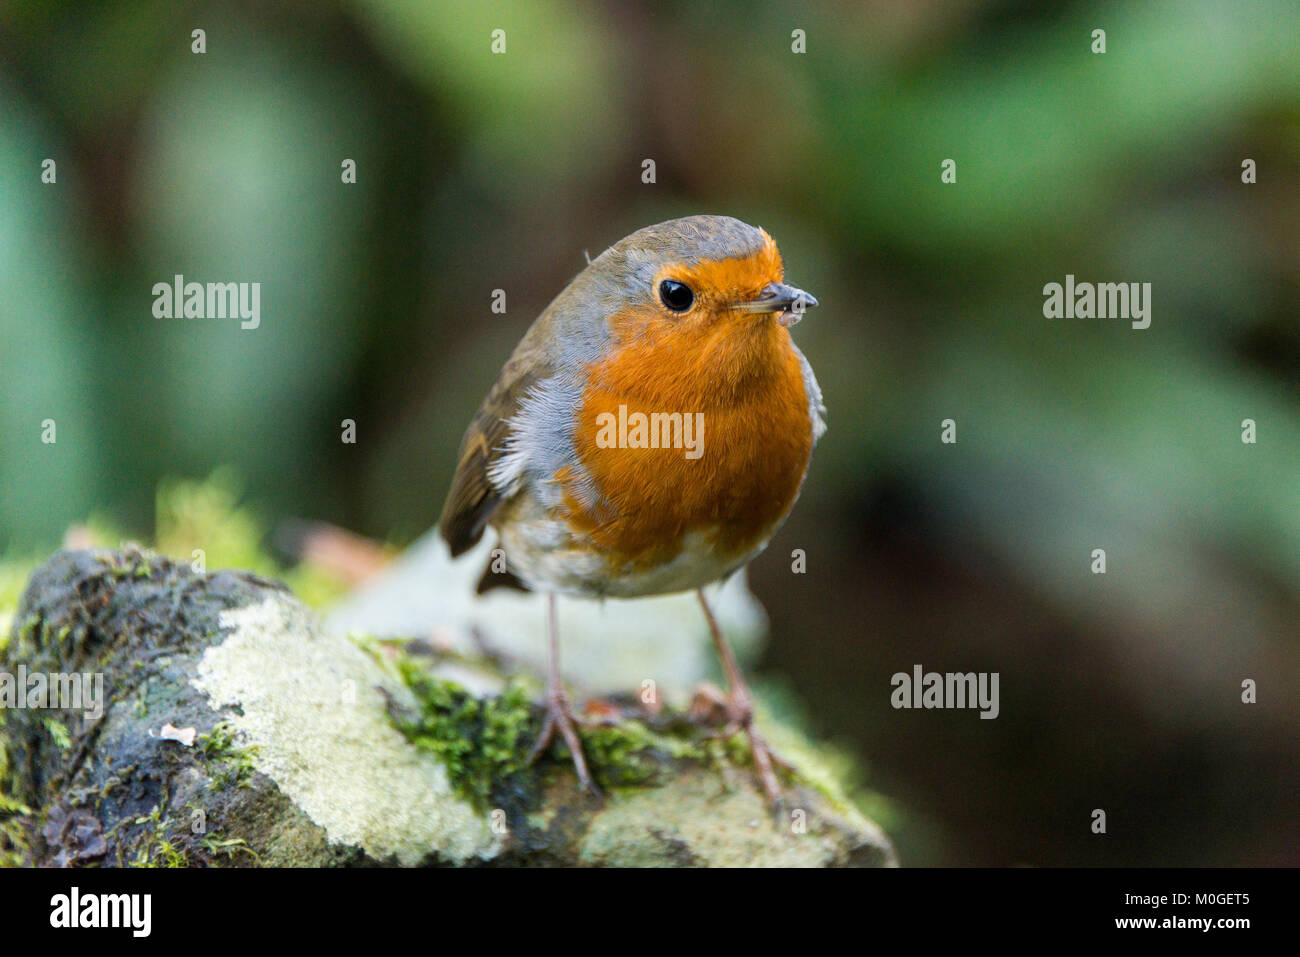 A robin (Erithacus rubecula) perched on a stone Stock Photo